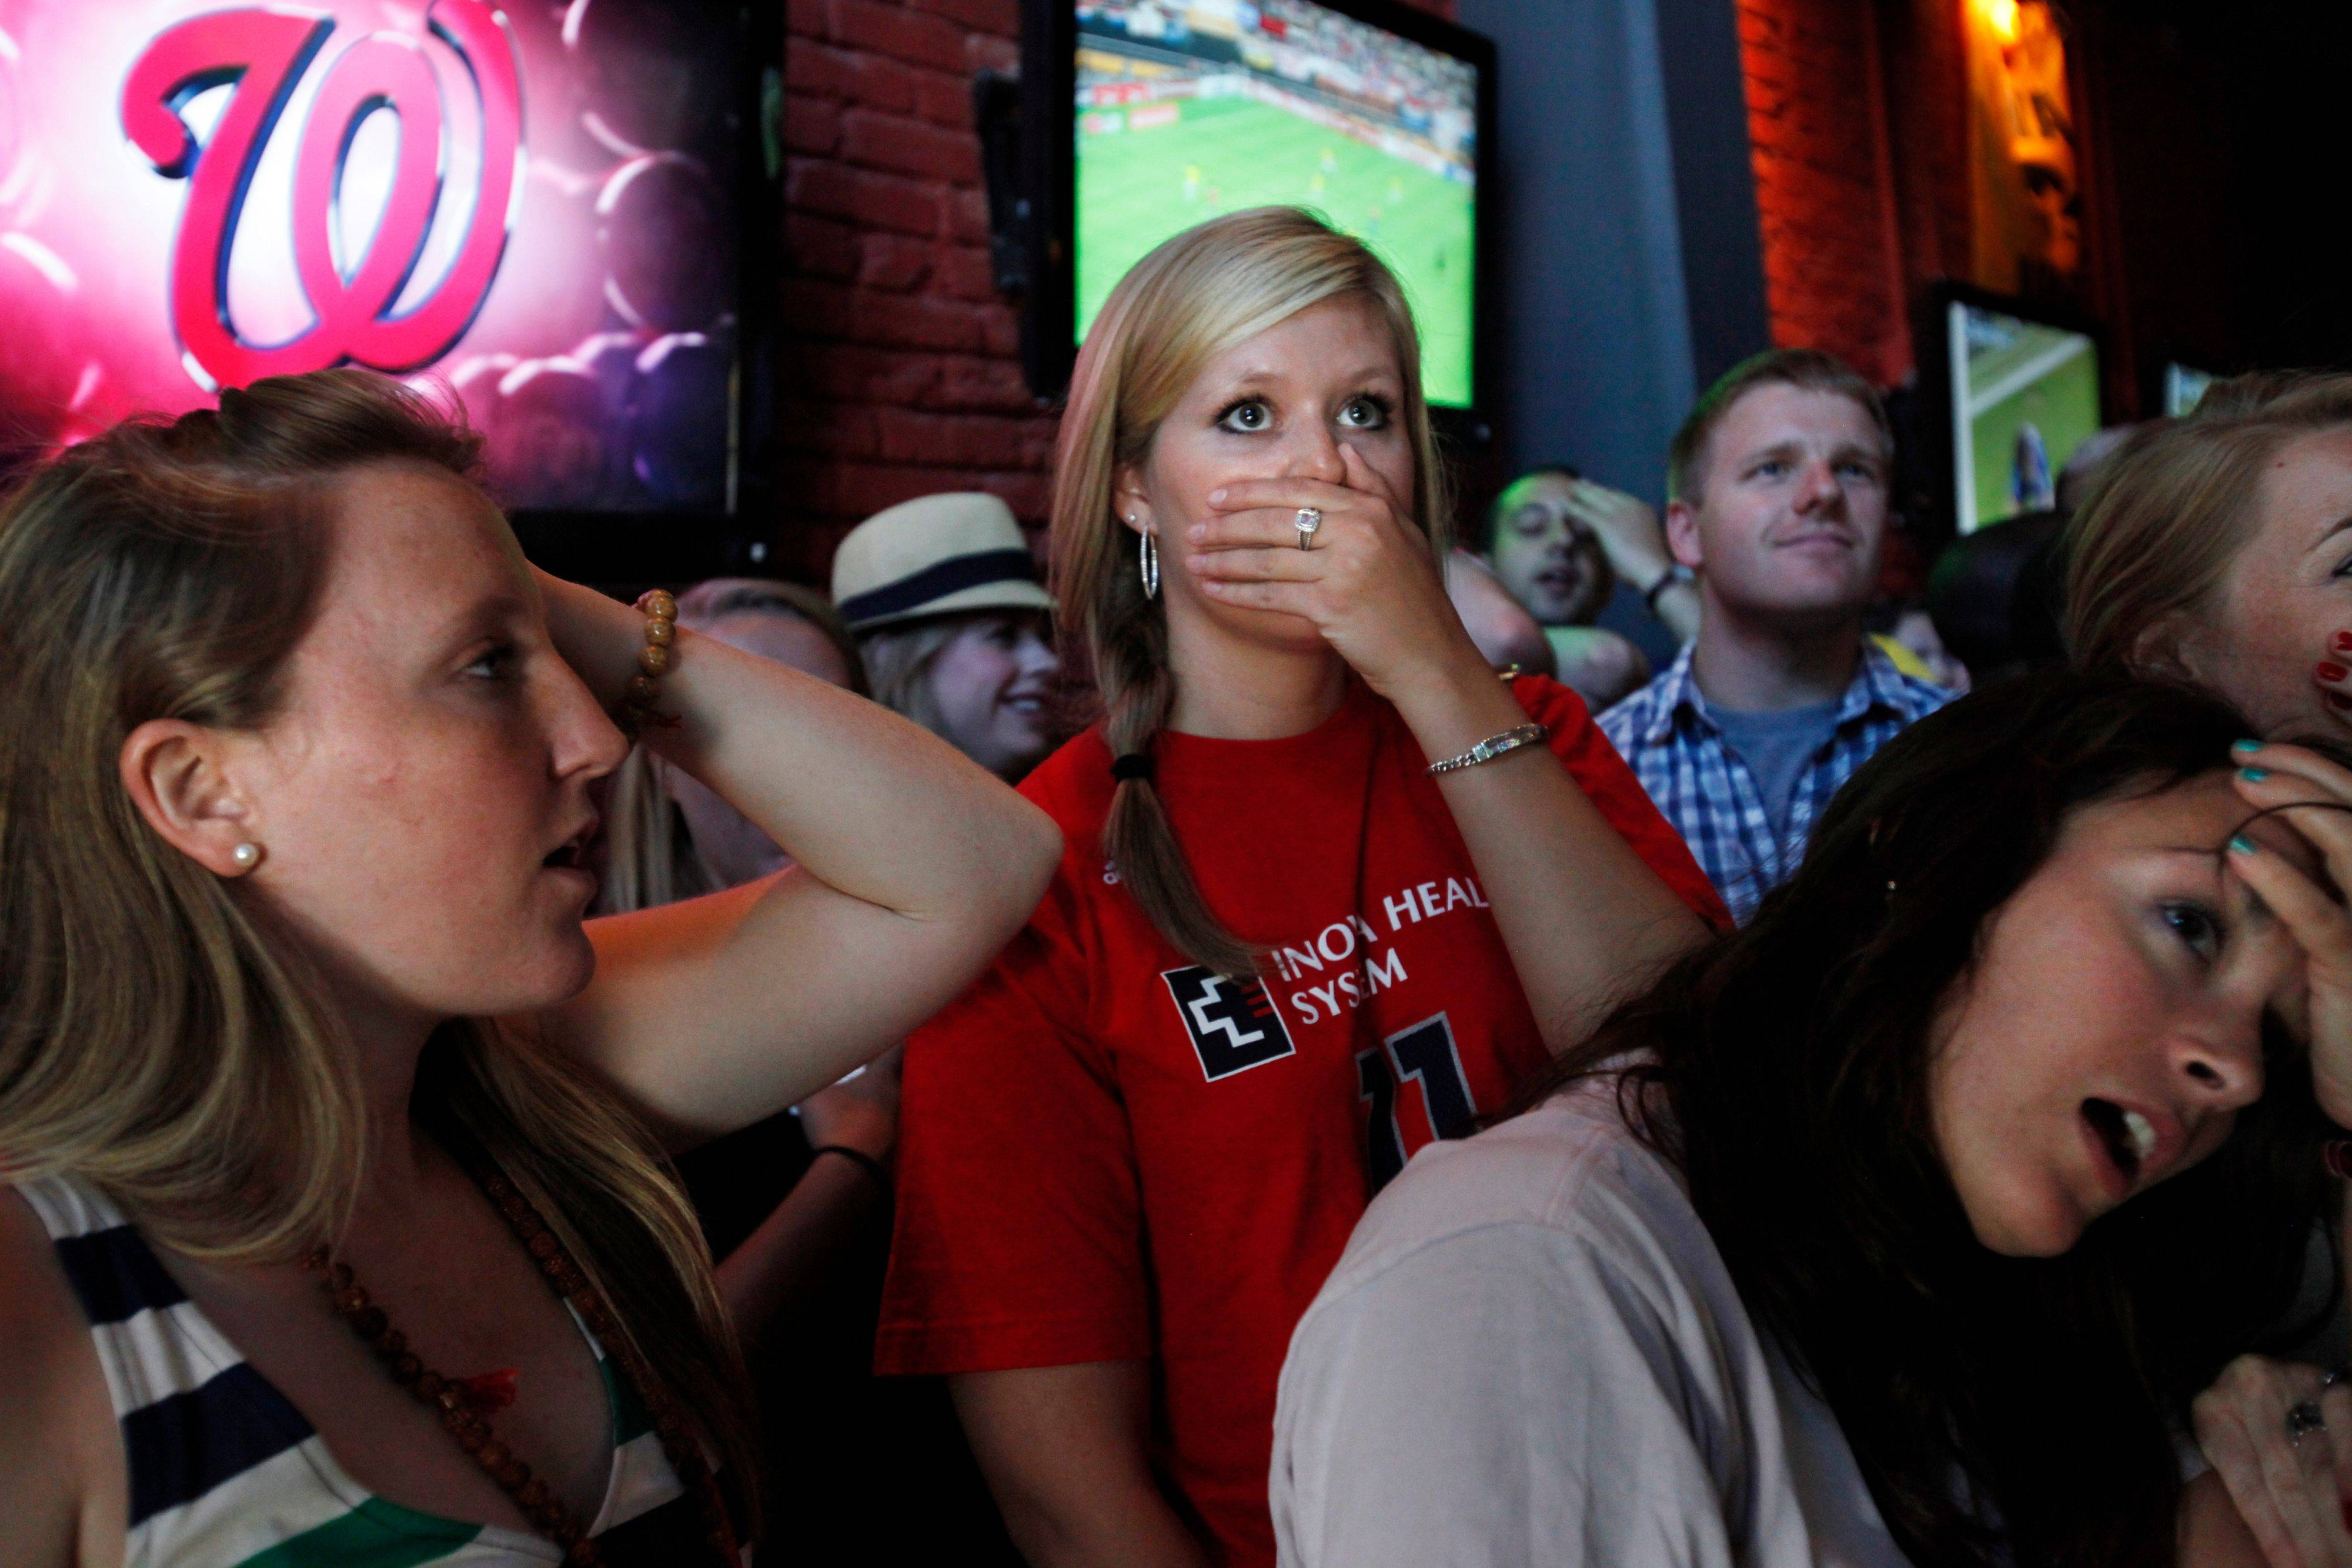 Soccer fan Leigh Ann Renfro, center, reacts after Japan scored, tying the United States during the second half of the Women's World Cup soccer final, as fans watch at Public Bar in Washington on Sunday.